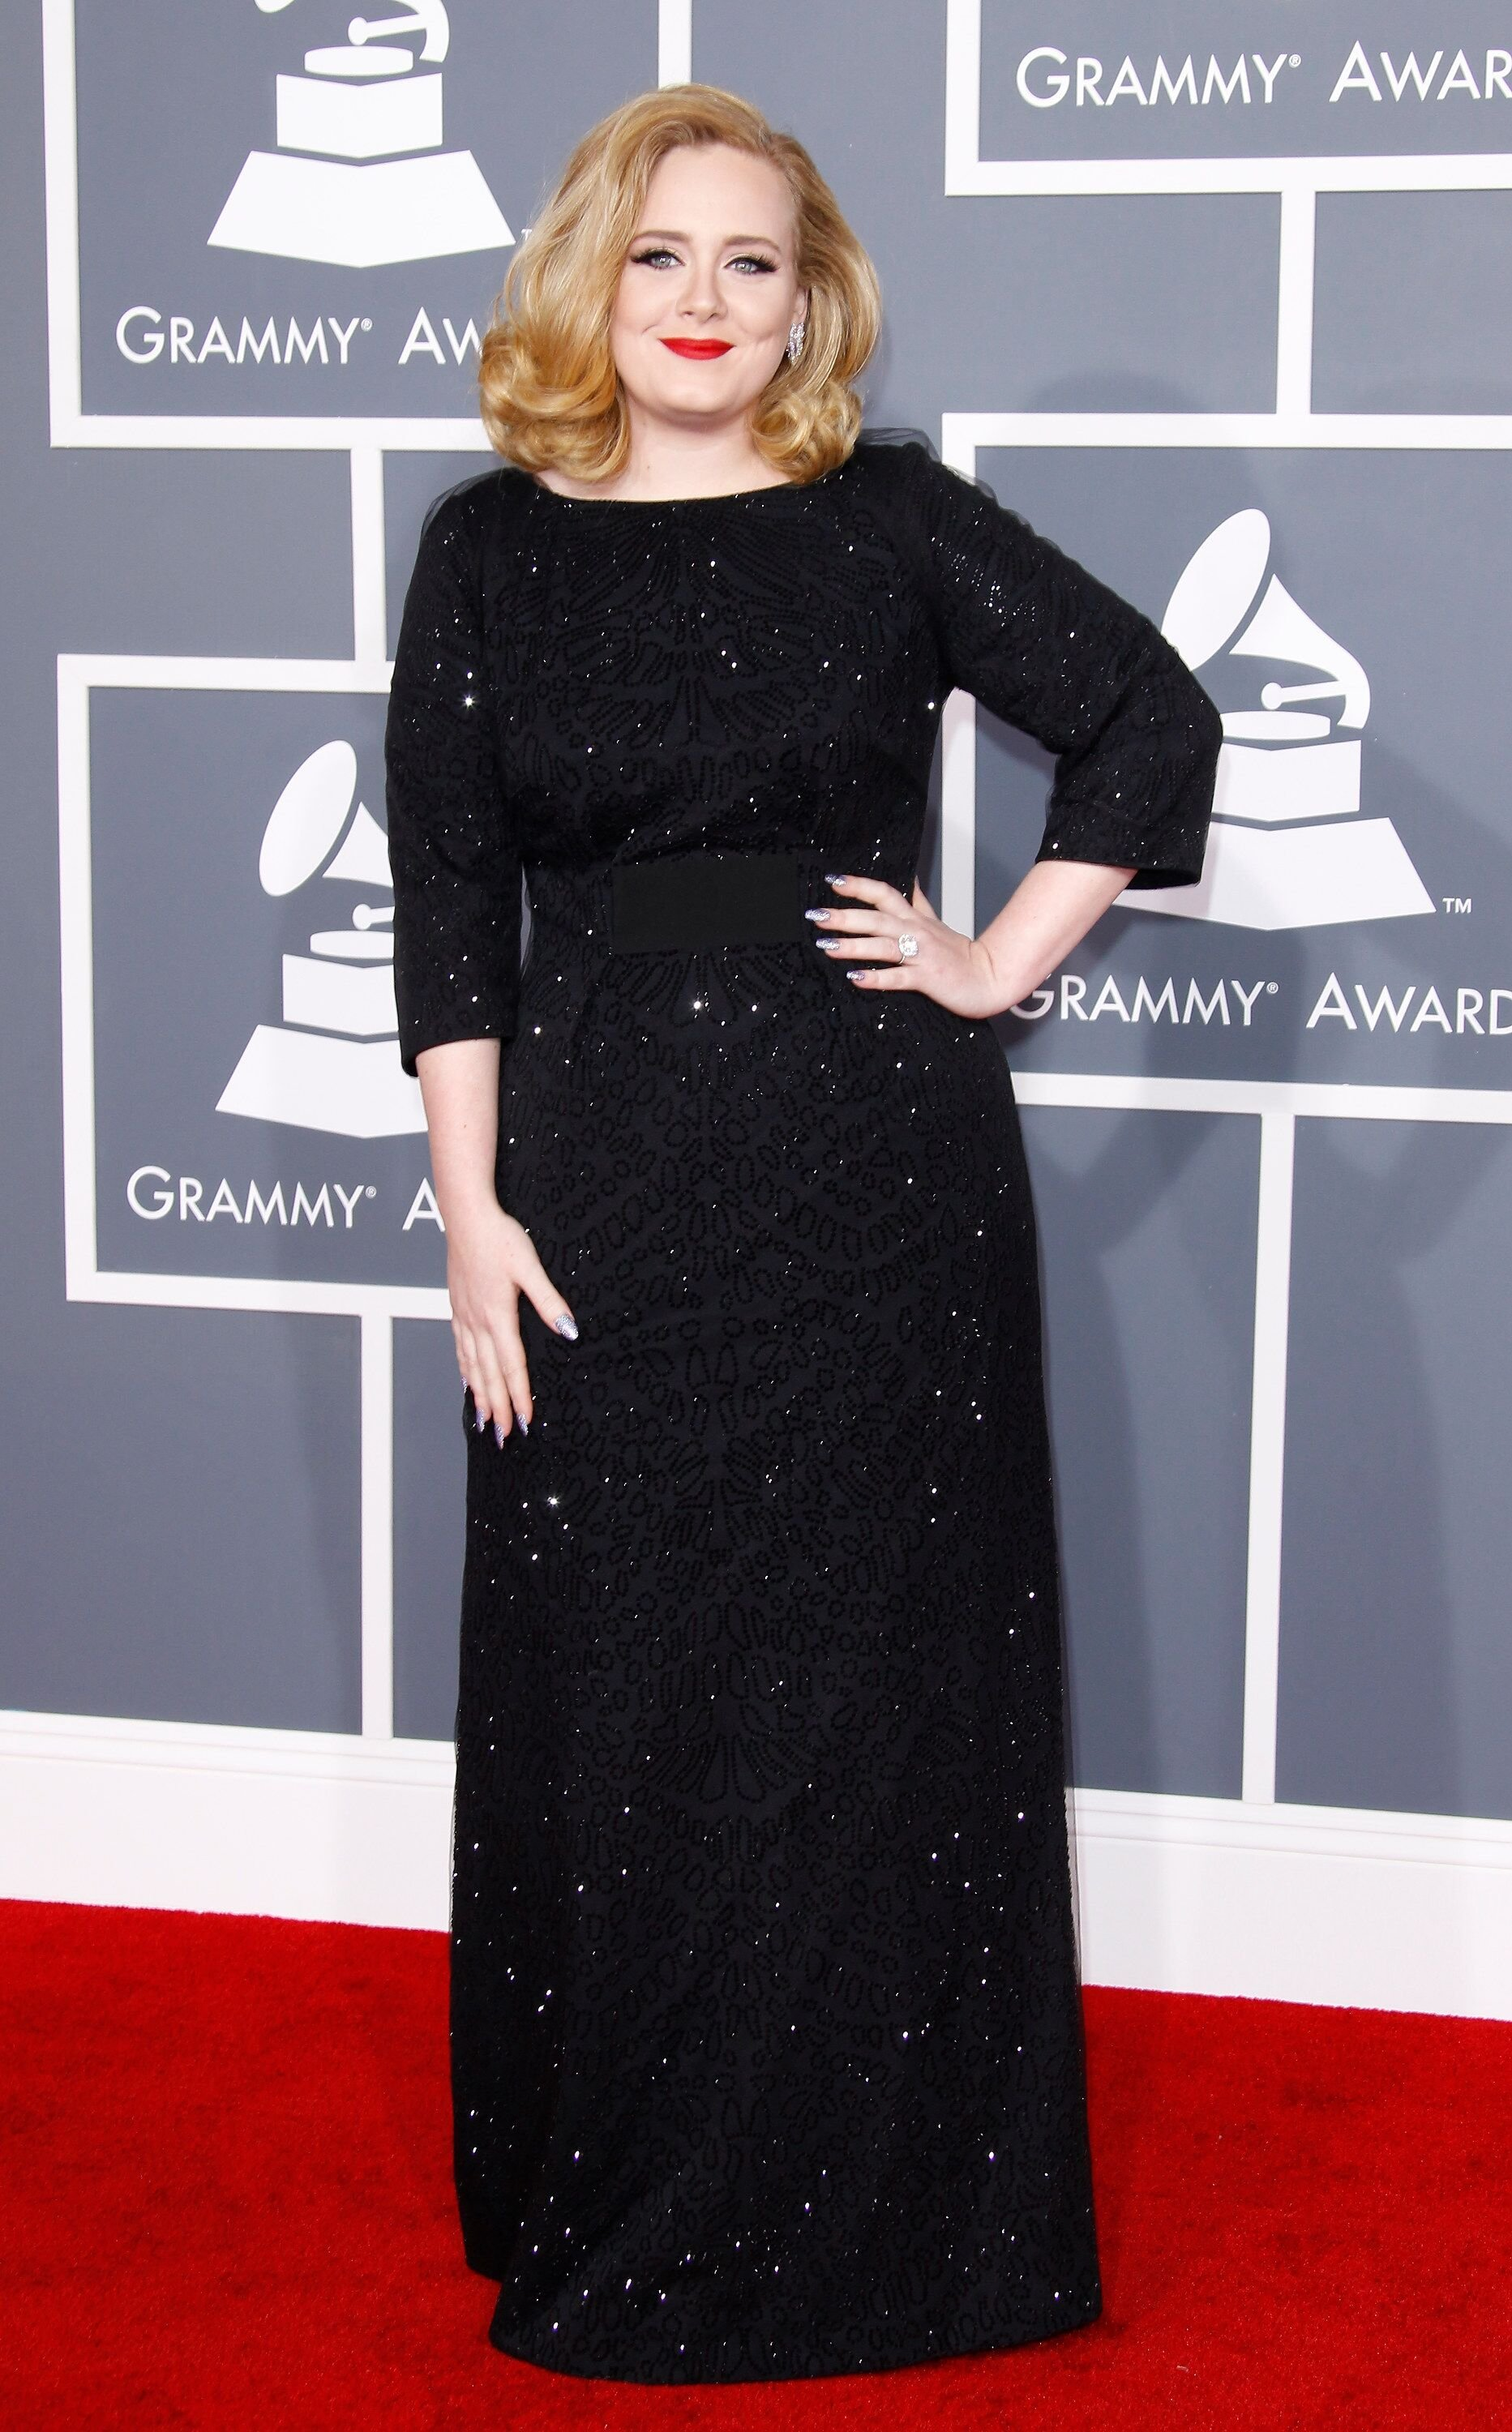 Adele at the 54th Annual Grammy Awards on February 12, 2012, in Los Angeles, California | Photo: Dan MacMedan/WireImage/Getty Images